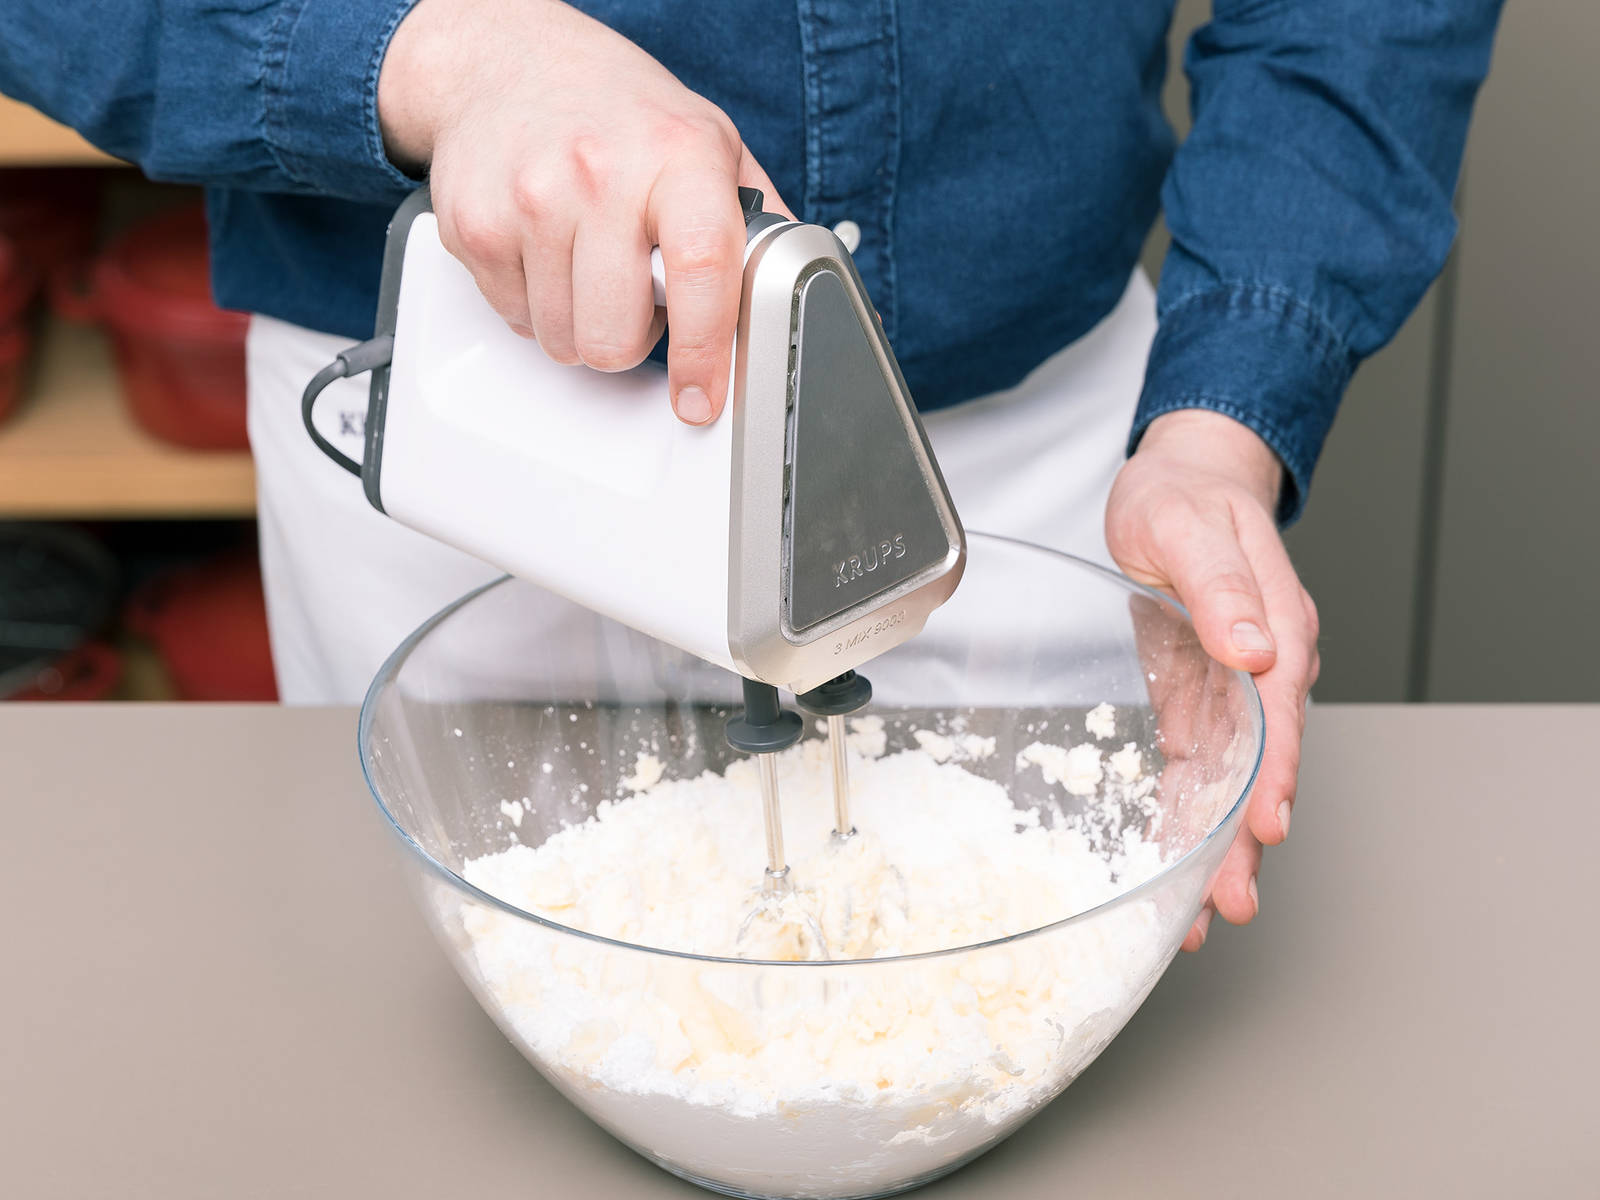 Preheat the oven to 175°C/350°F. Grease and flour a baking tin. In a large bowl, using a hand mixer beat most of the butter with most of the confectioner's sugar, half of the vanilla extract, and salt until fluffy. Beat in the eggs one by one. In a separate bowl, mix the flour with the baking powder. Gradually fold in part of the flour mix and the chamomile-infused milk to the butter mixture. Drain the soaked loose chamomile tea and add the leaves to the batter. Mix to combine.